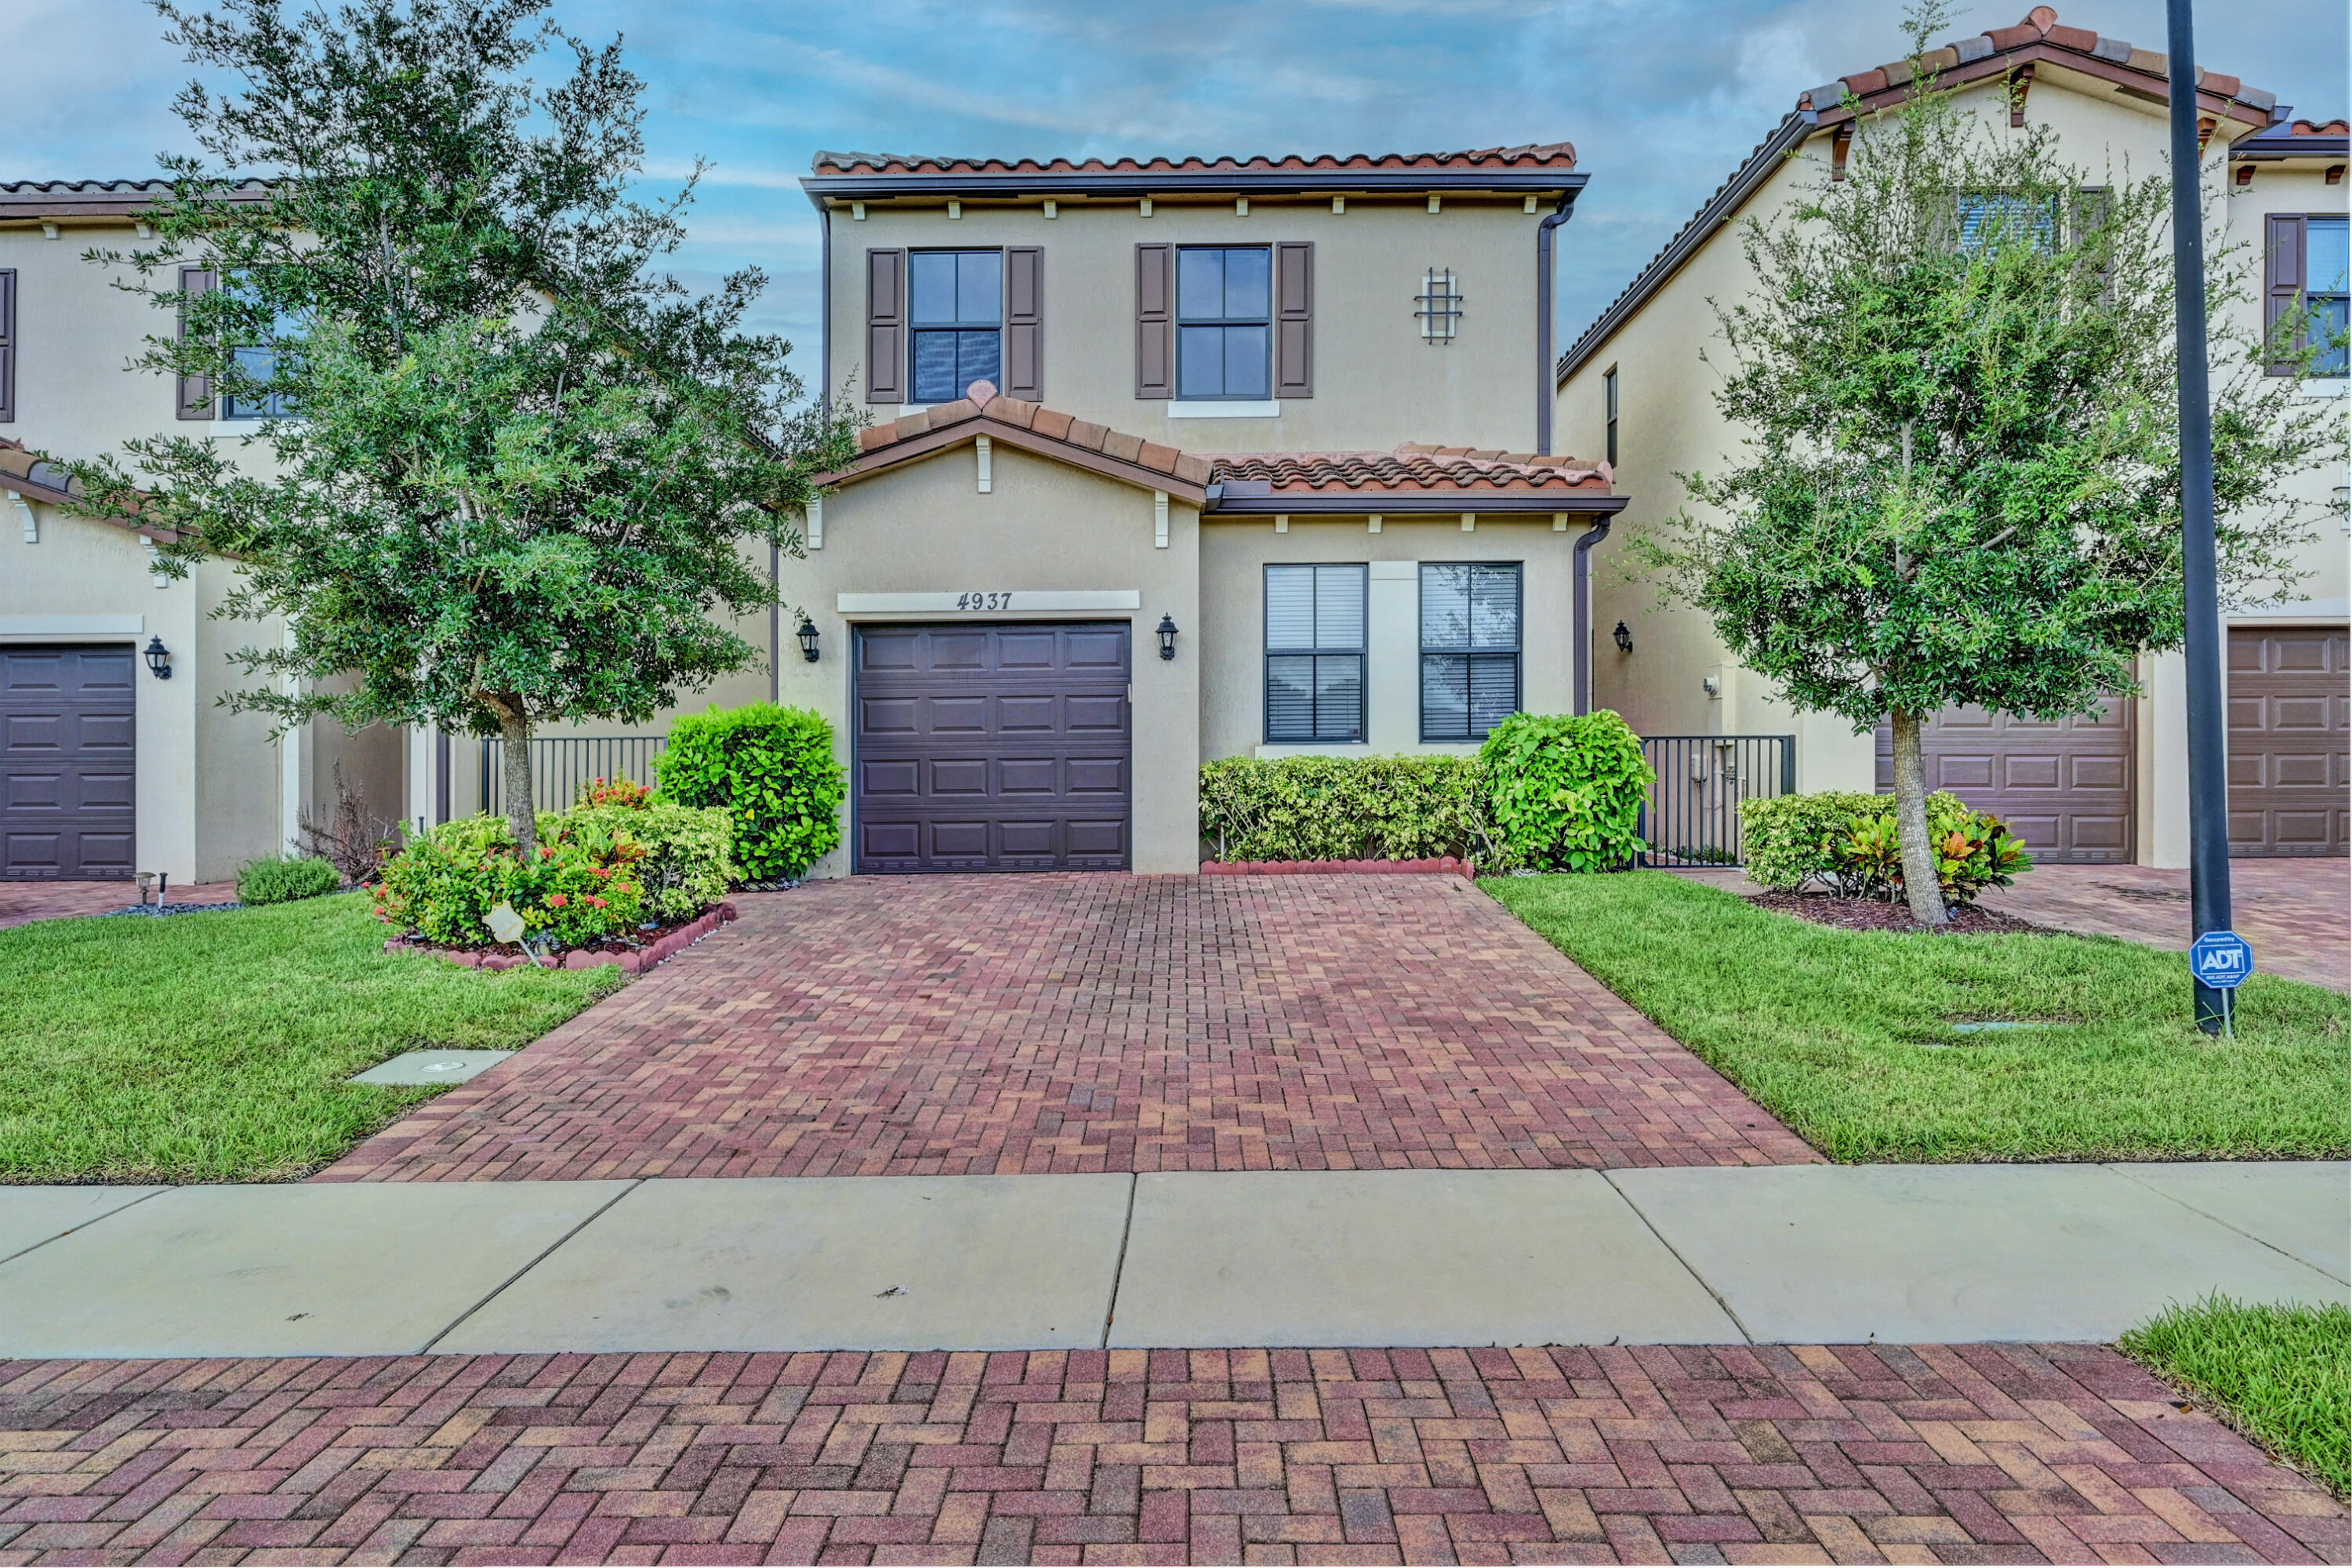 Details for 4937 55th Place Nw, Tamarac, FL 33319